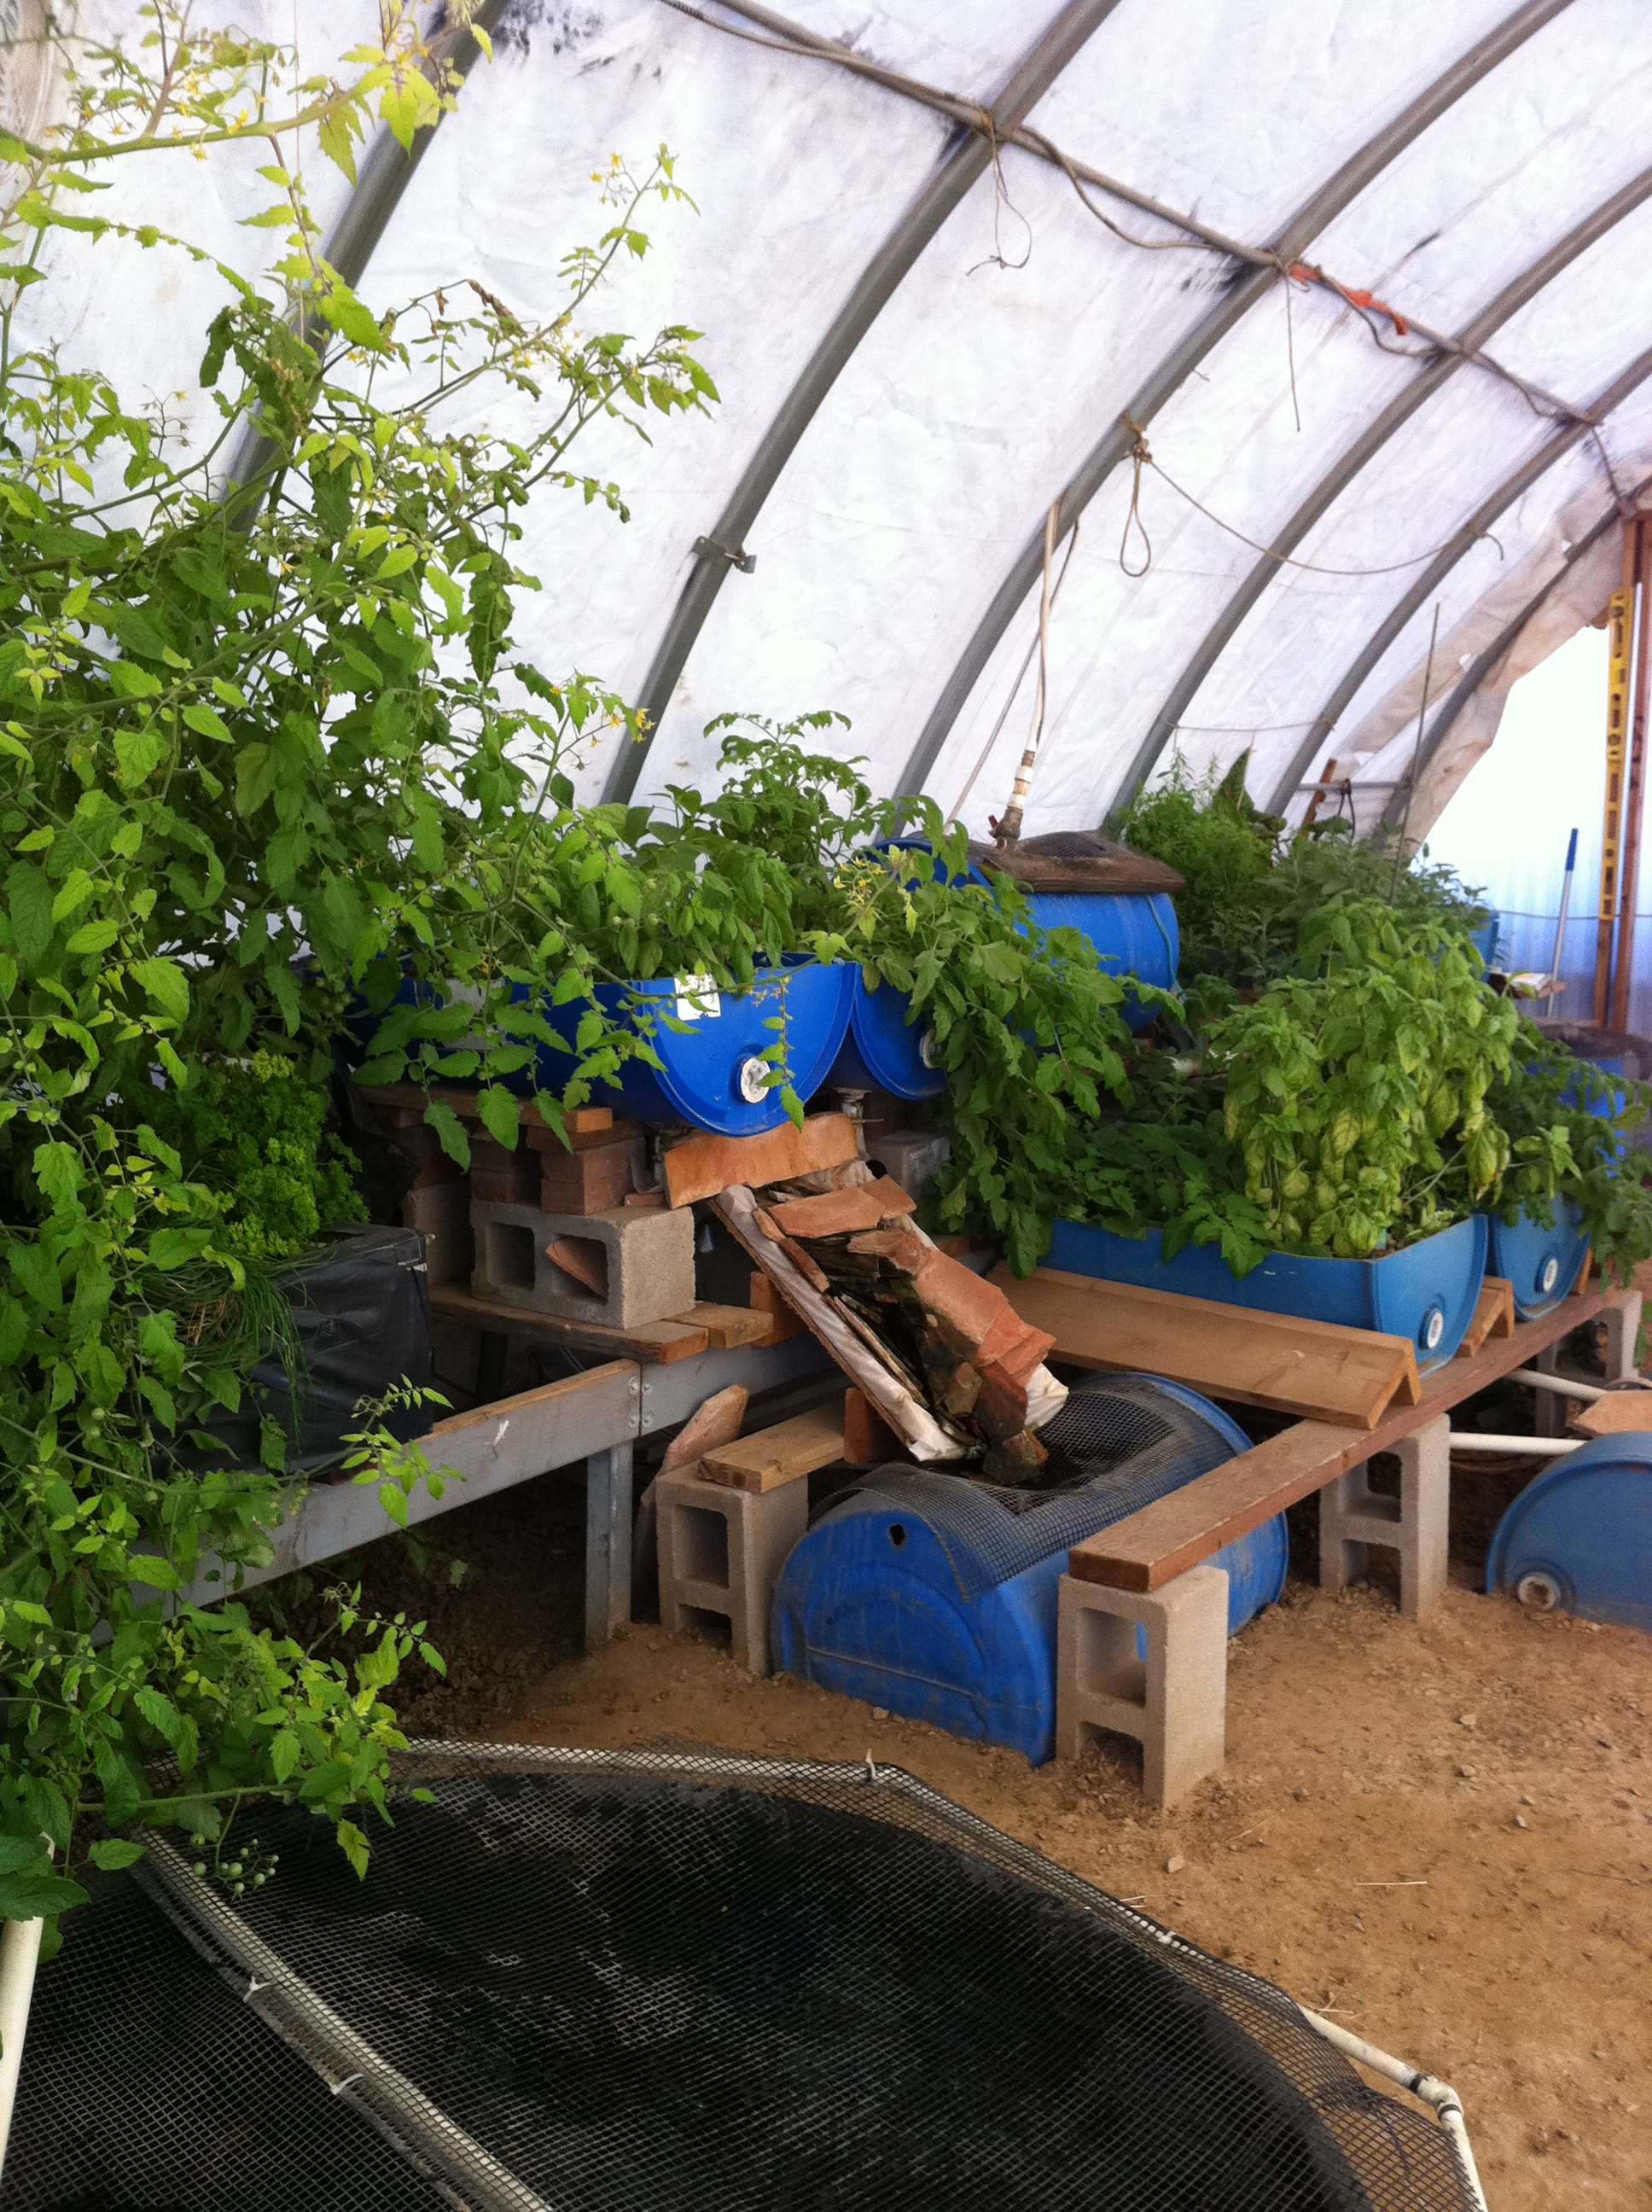 Can Aquaponics be Financially Viable?